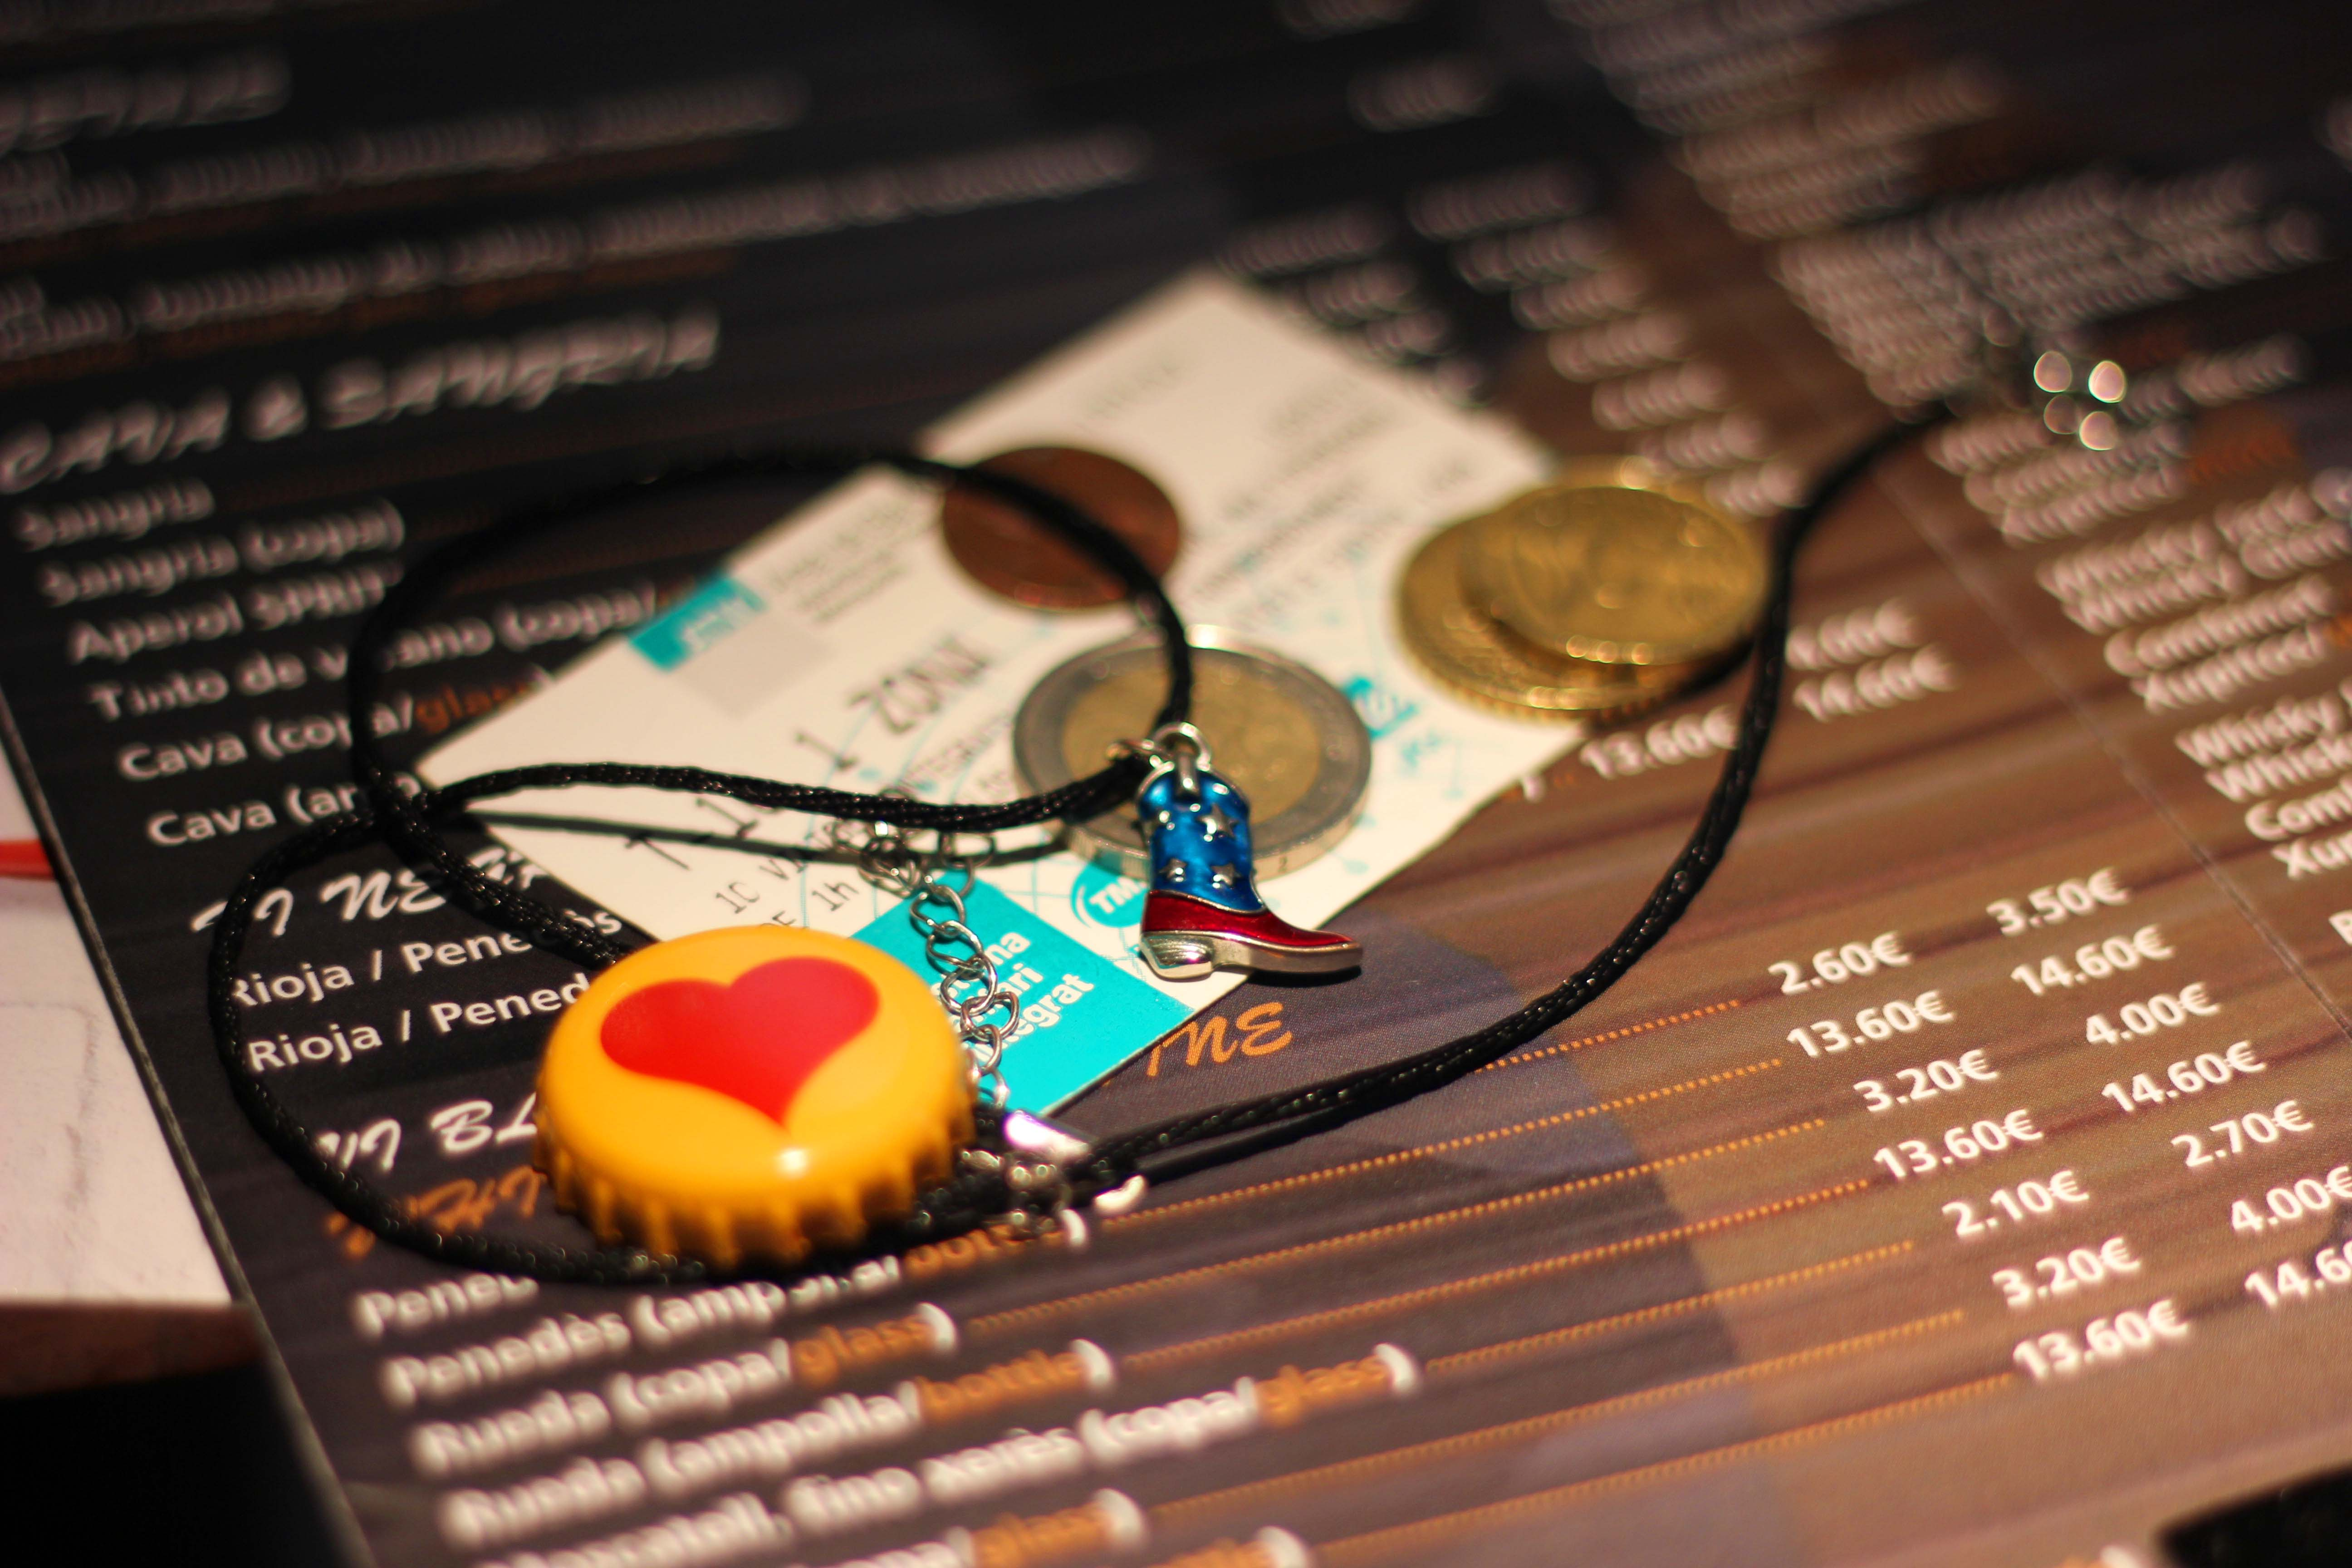 Objects placed on top of a Spanish menu, euro coins, American cents, a heart printed bottle cap and cowboy boot necklace decorated with the American flag.